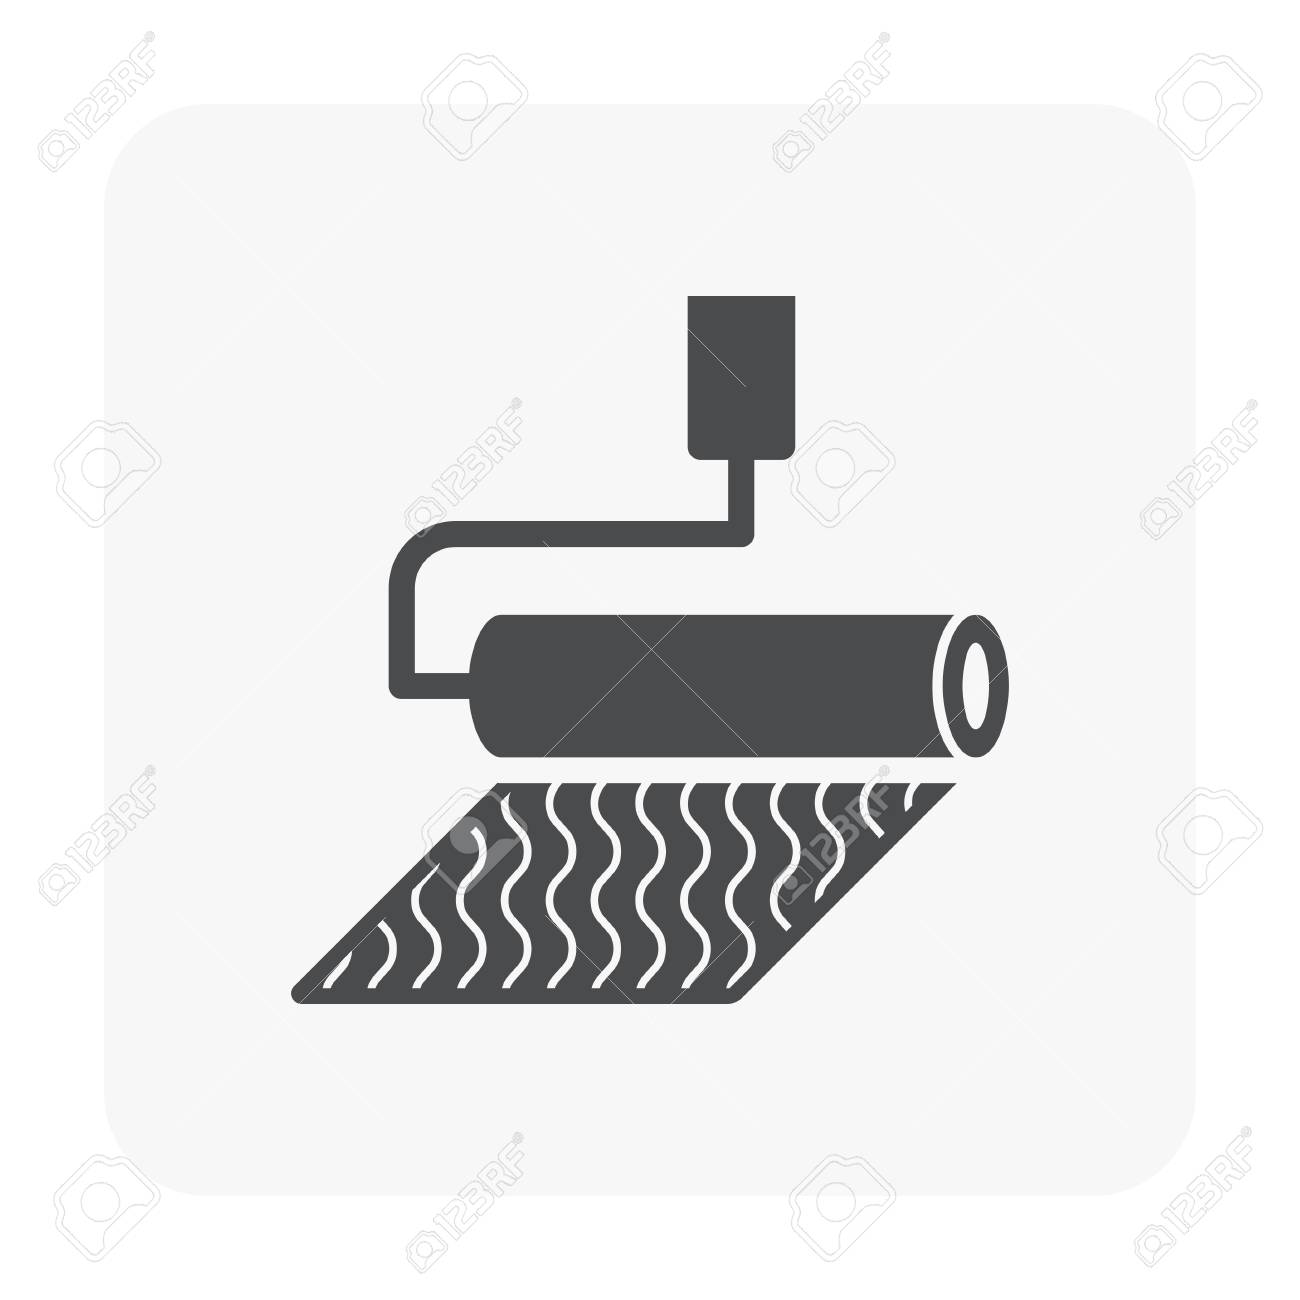 Waterproof and equipment icon on white. - 107413828